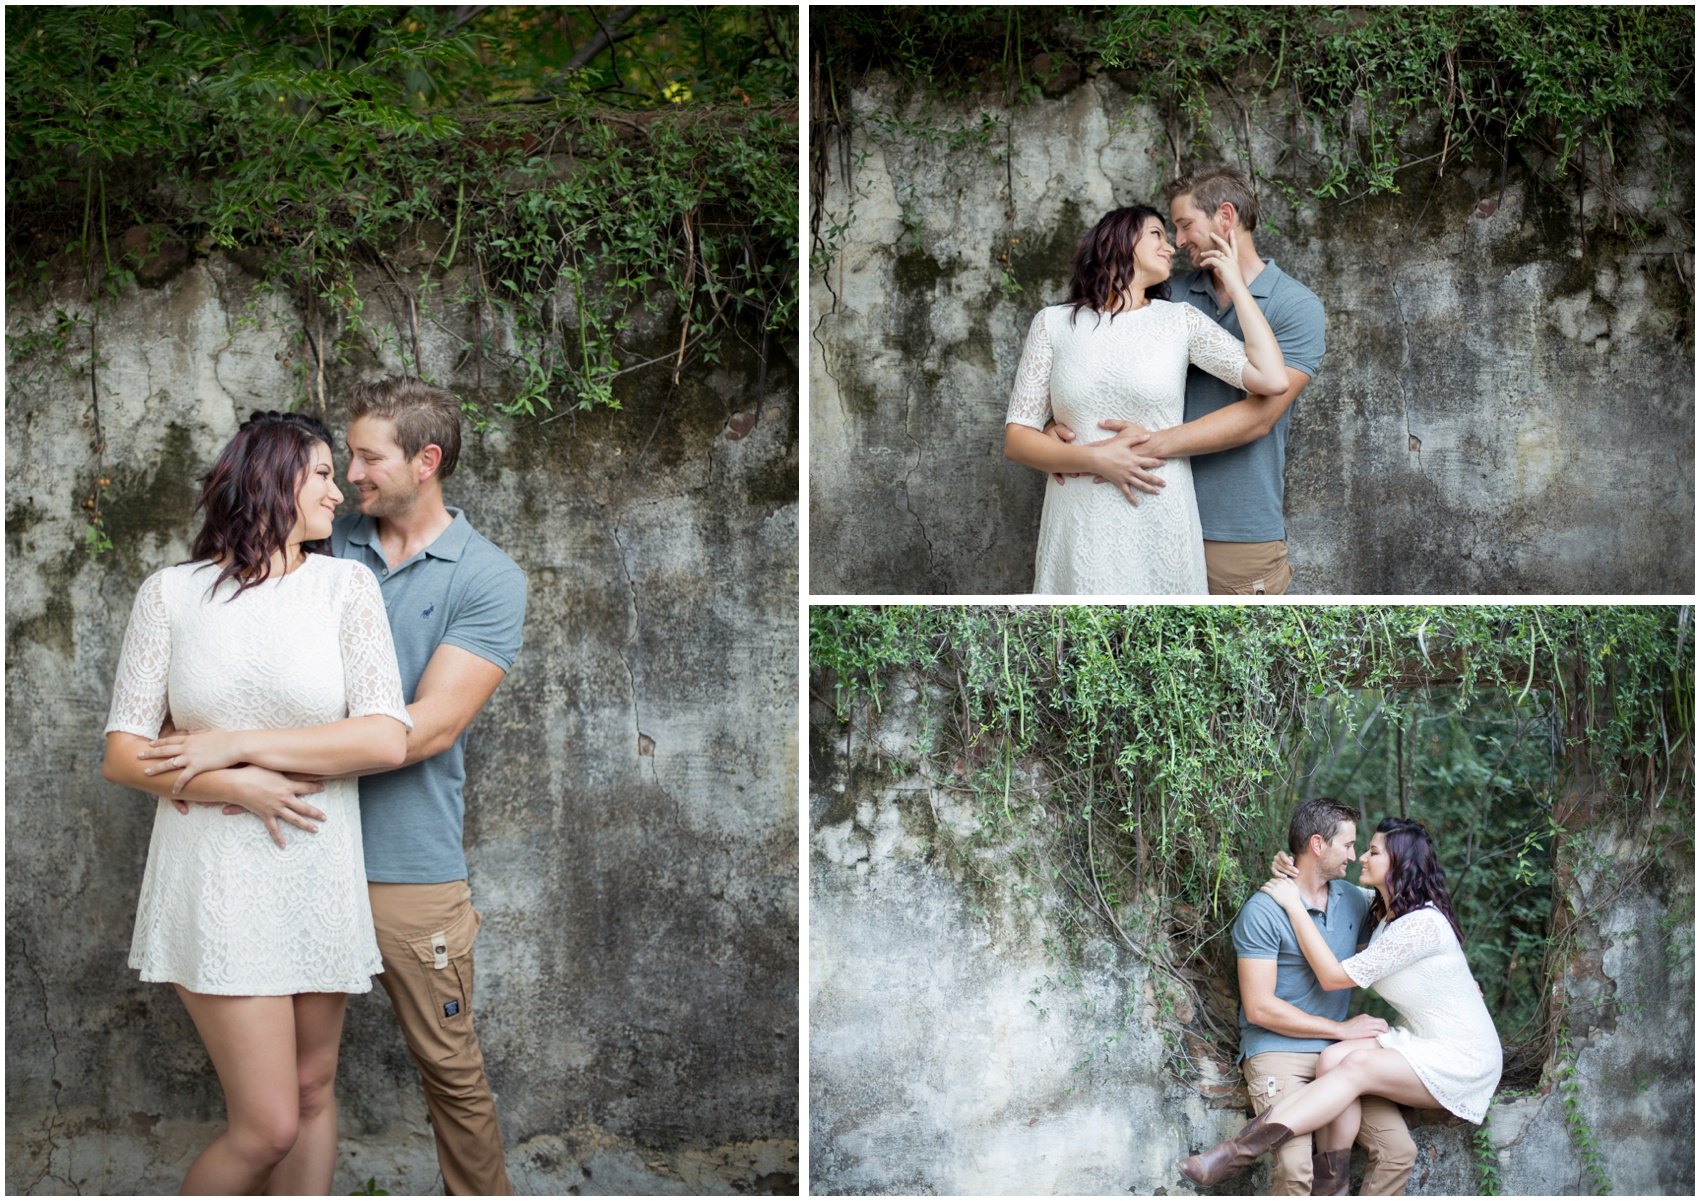 rosemary_hill_engagement_shoot_stephanie_and_jannie_02